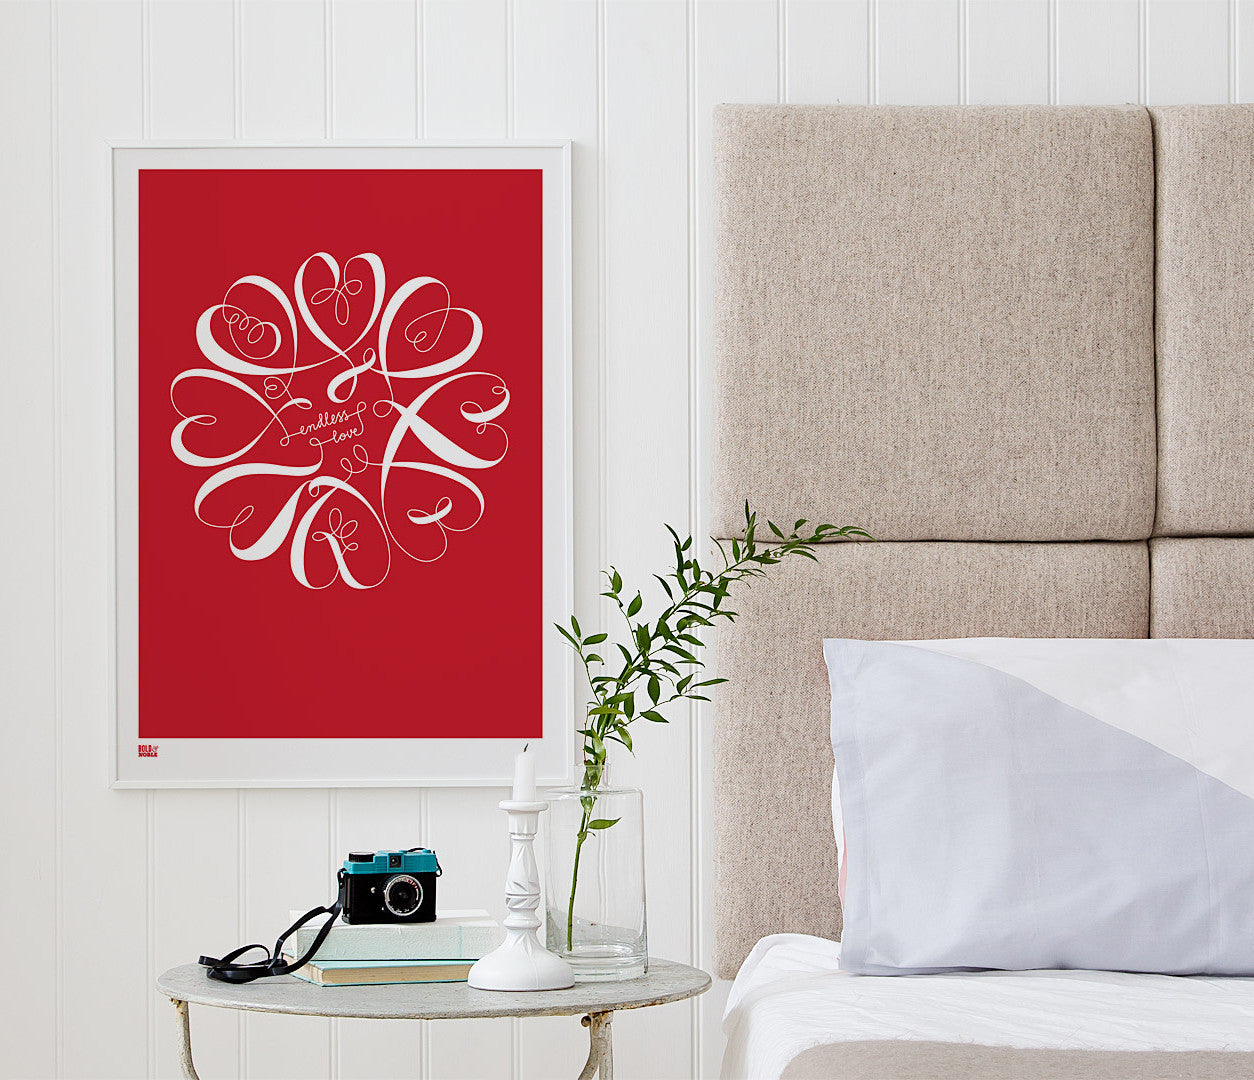 'Endless Love' Art Print in Poppy Red